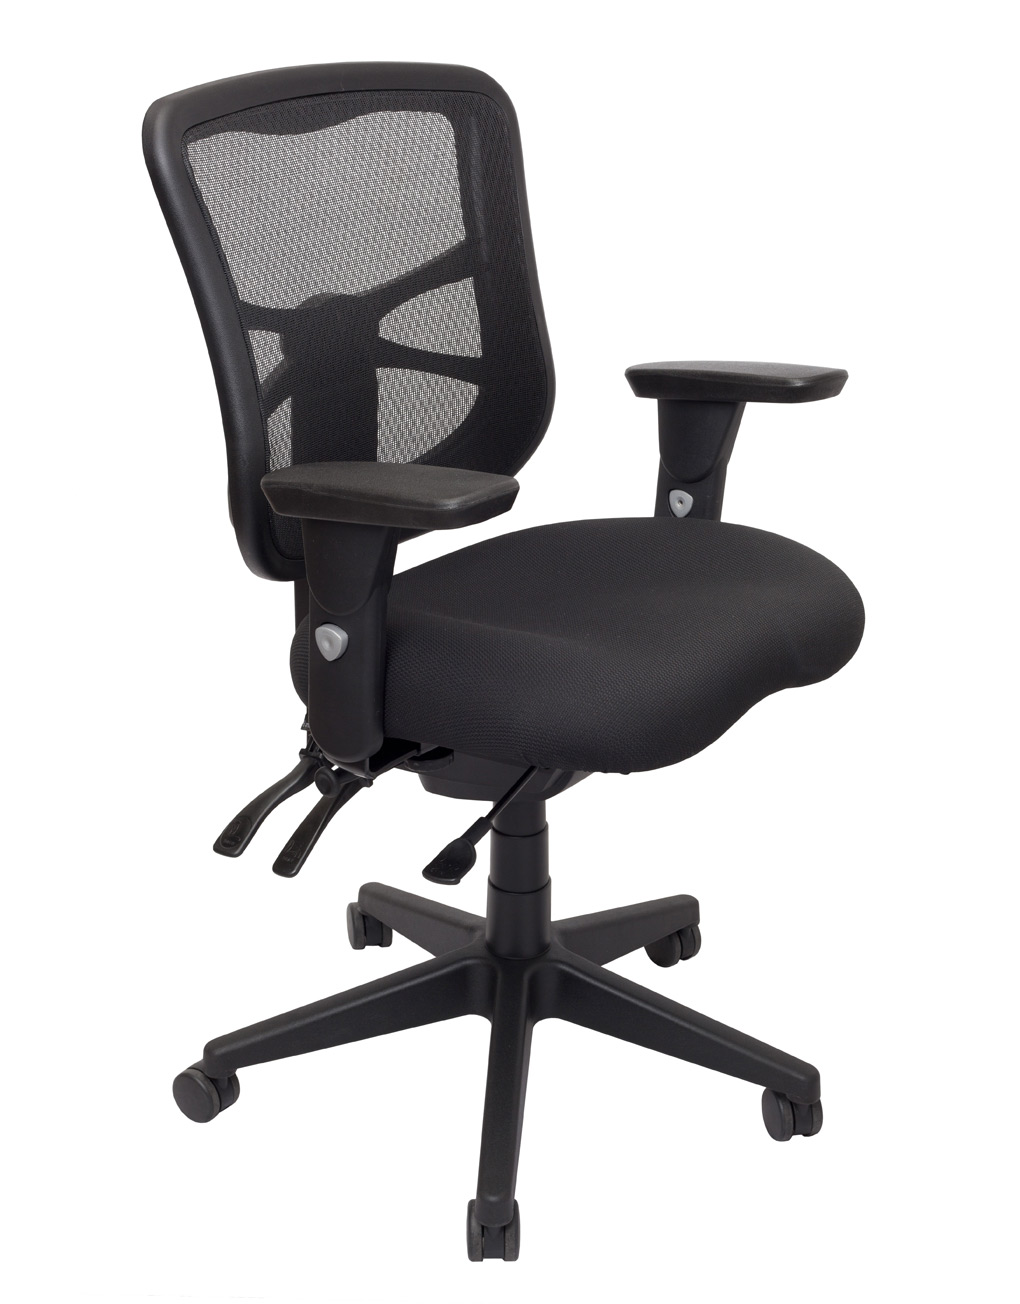 pronto mesh back Ergonomic office chair